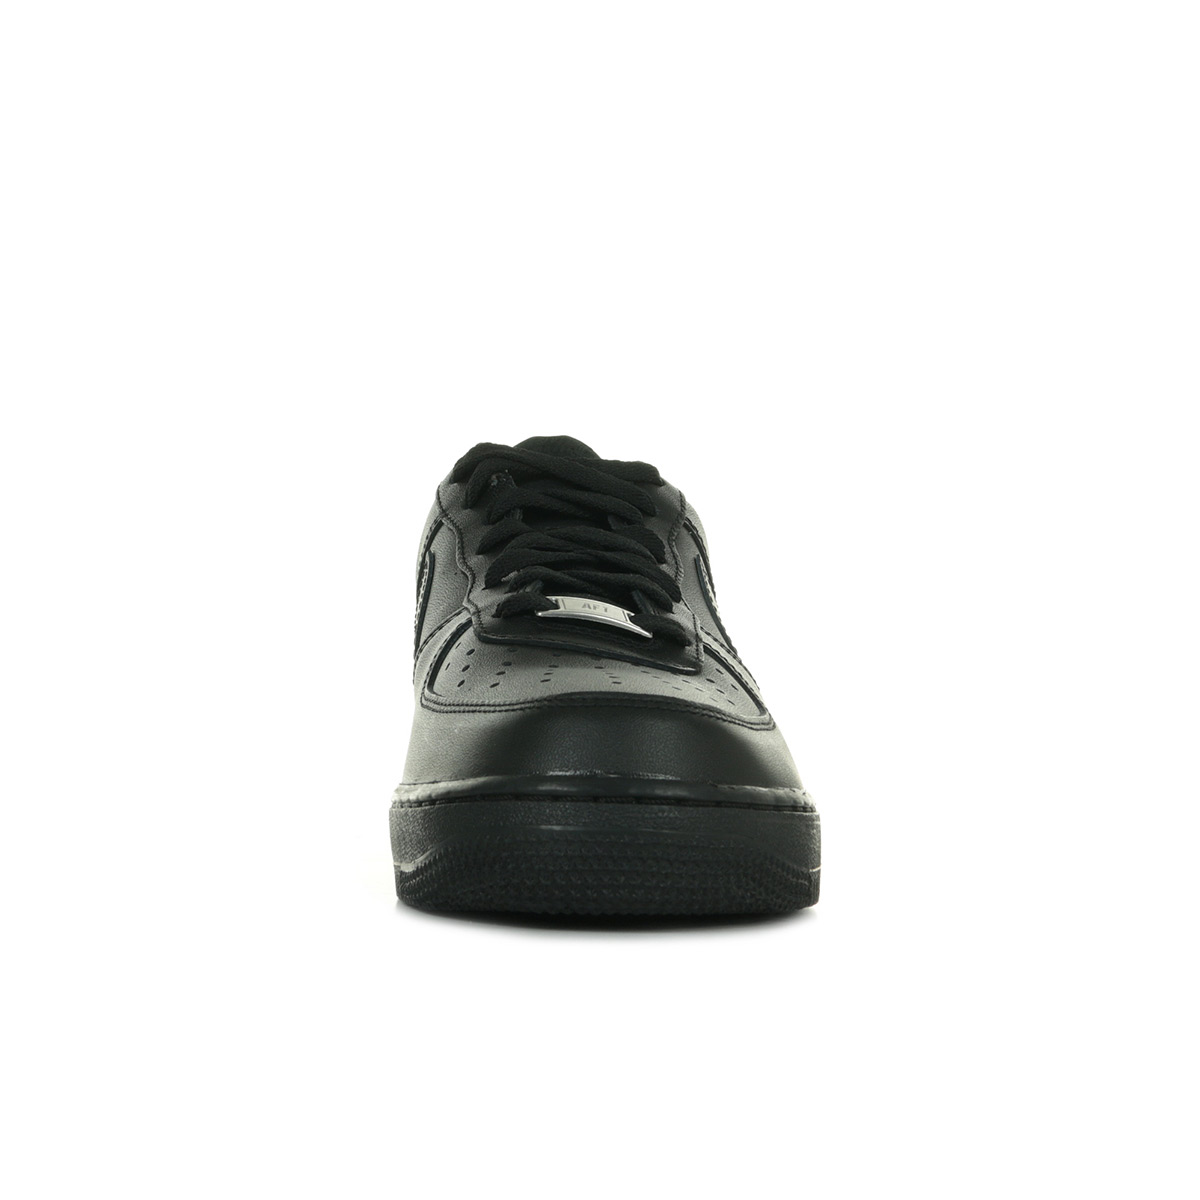 Nike Air force 1 07 315122001, Baskets mode homme